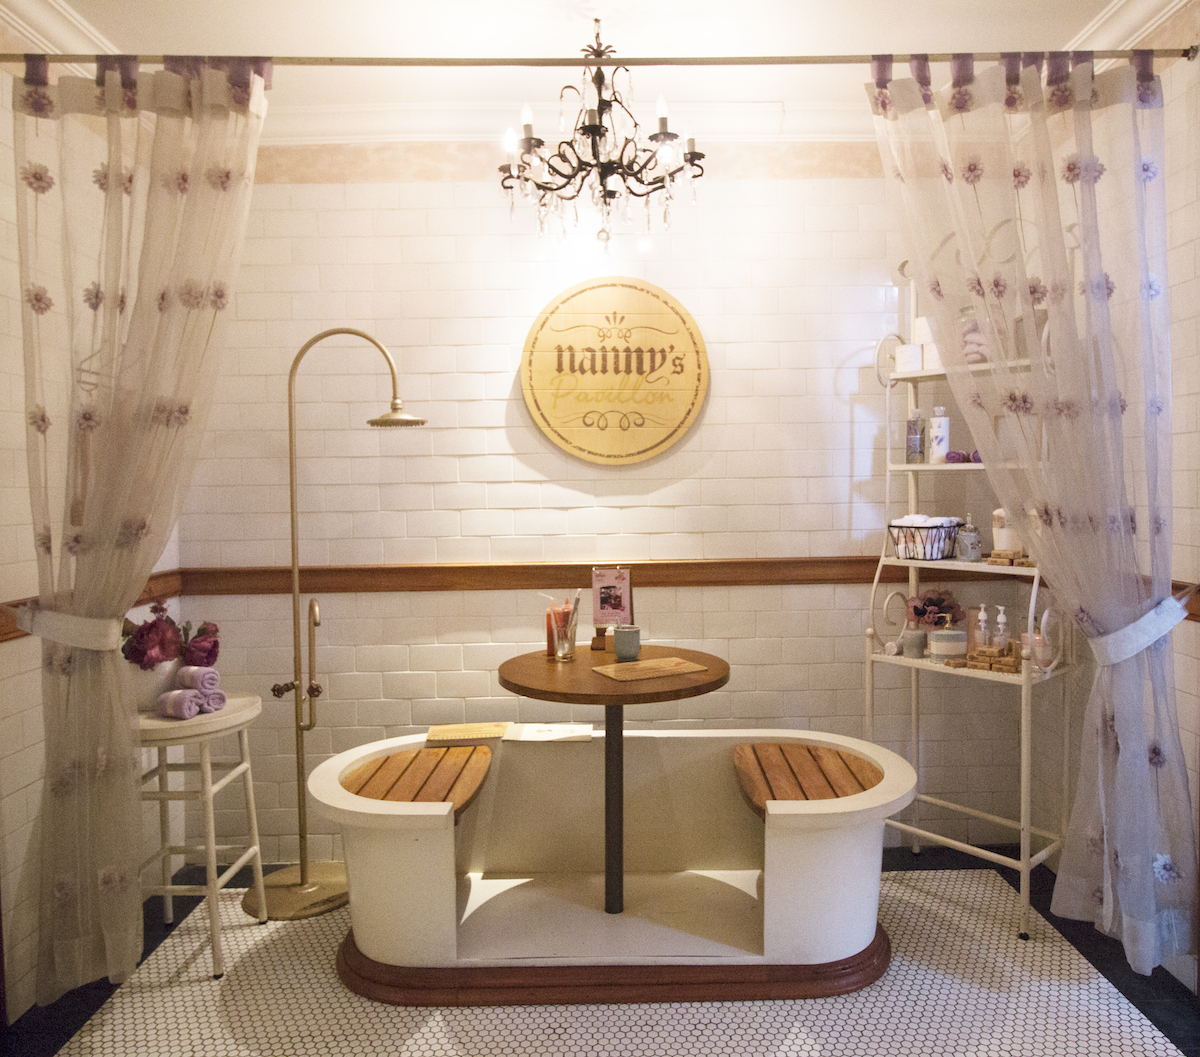 Things to do in Bandung with kids - Nanny's Pavillion Bathroom.jpg